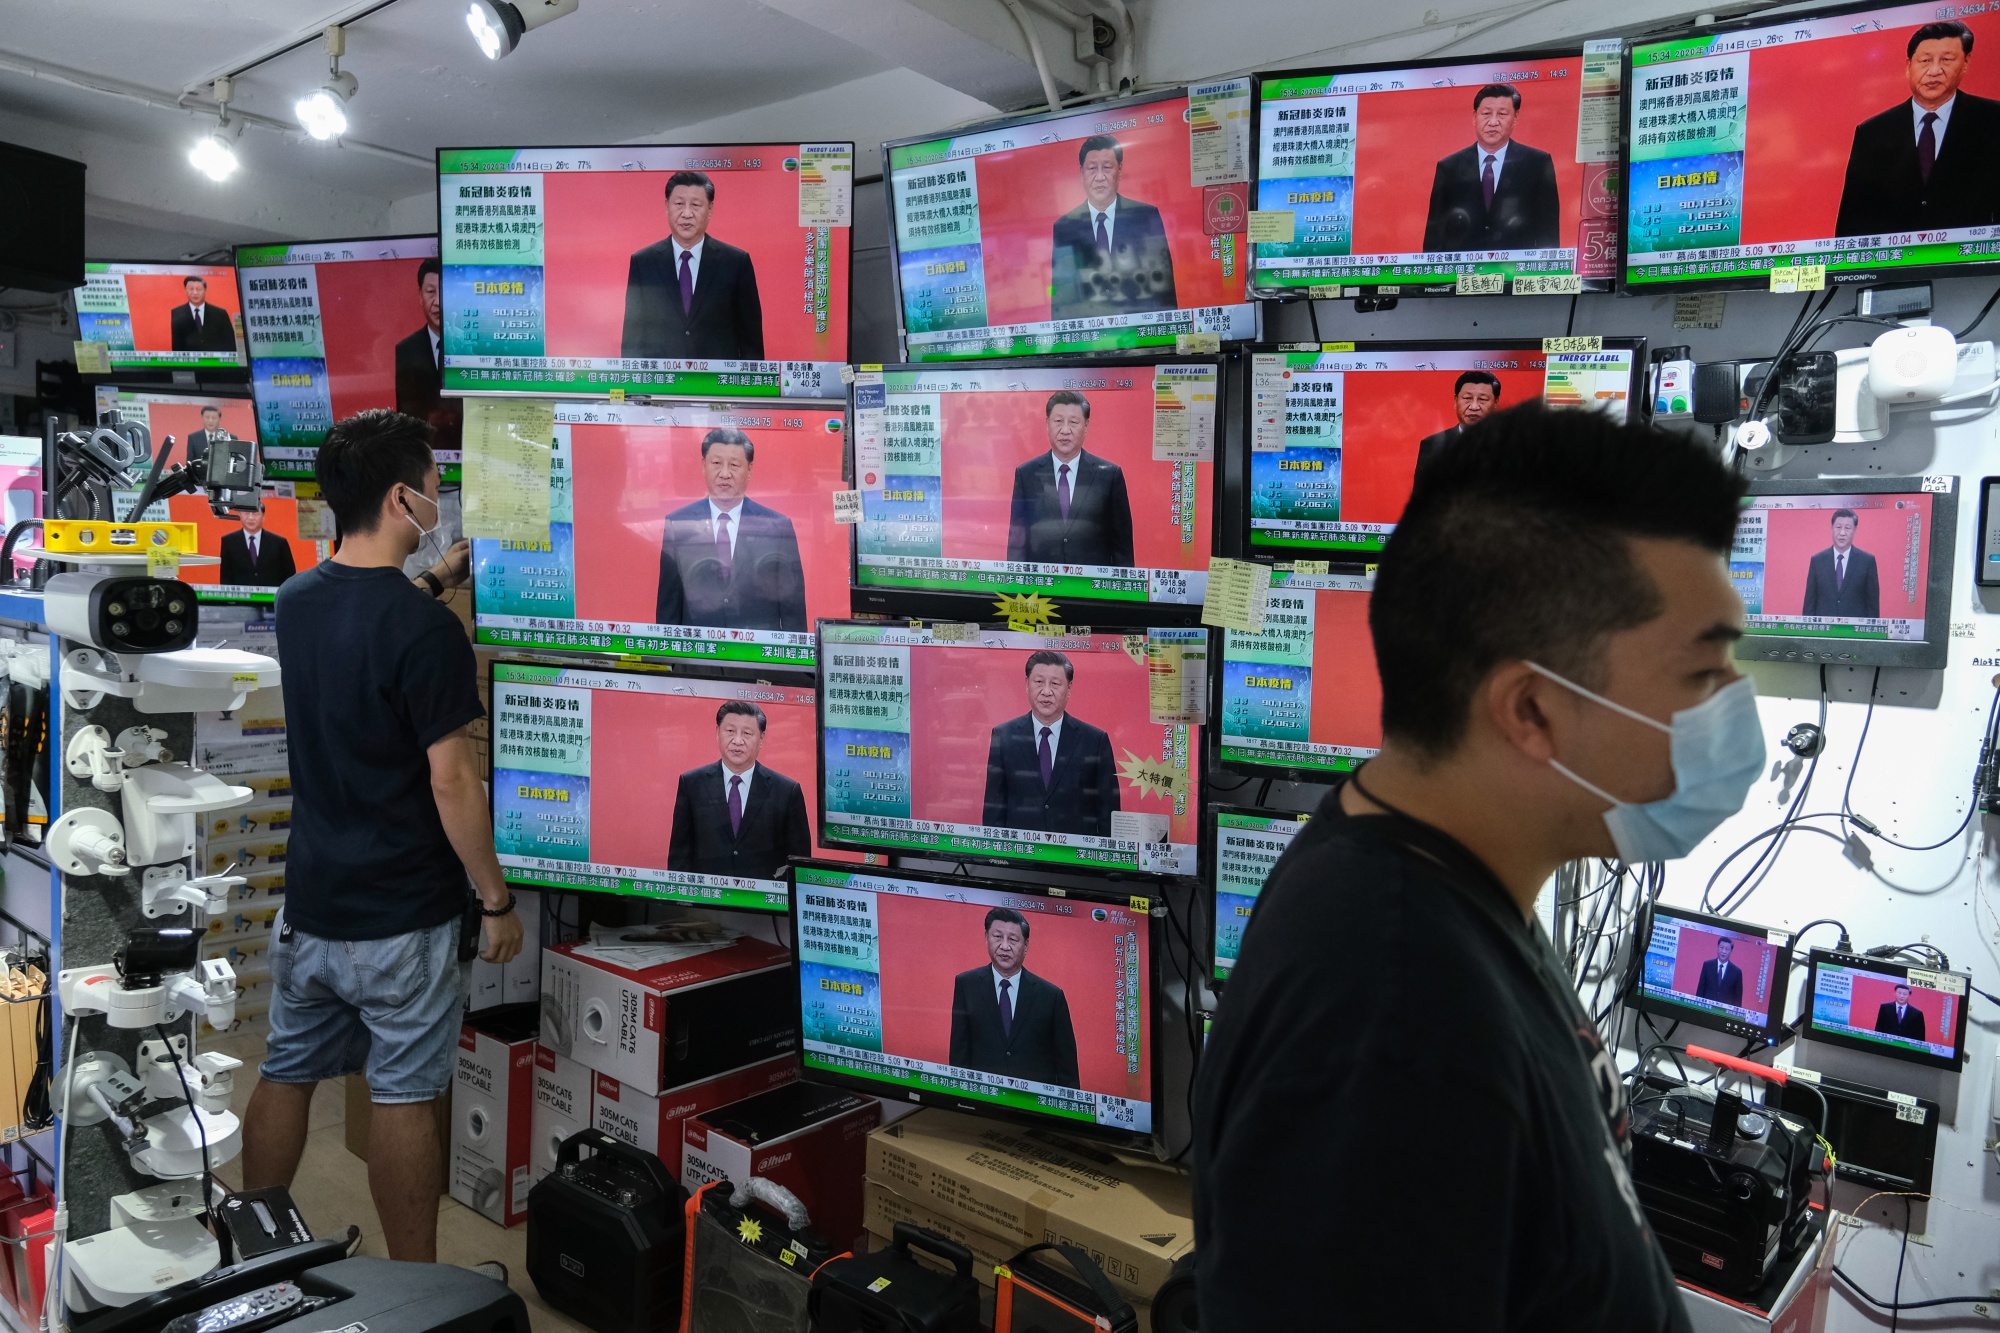 President Xi Jinping's speech in Shenzhen is broadcasted inside a store in Hong Kong, Oct. 14.